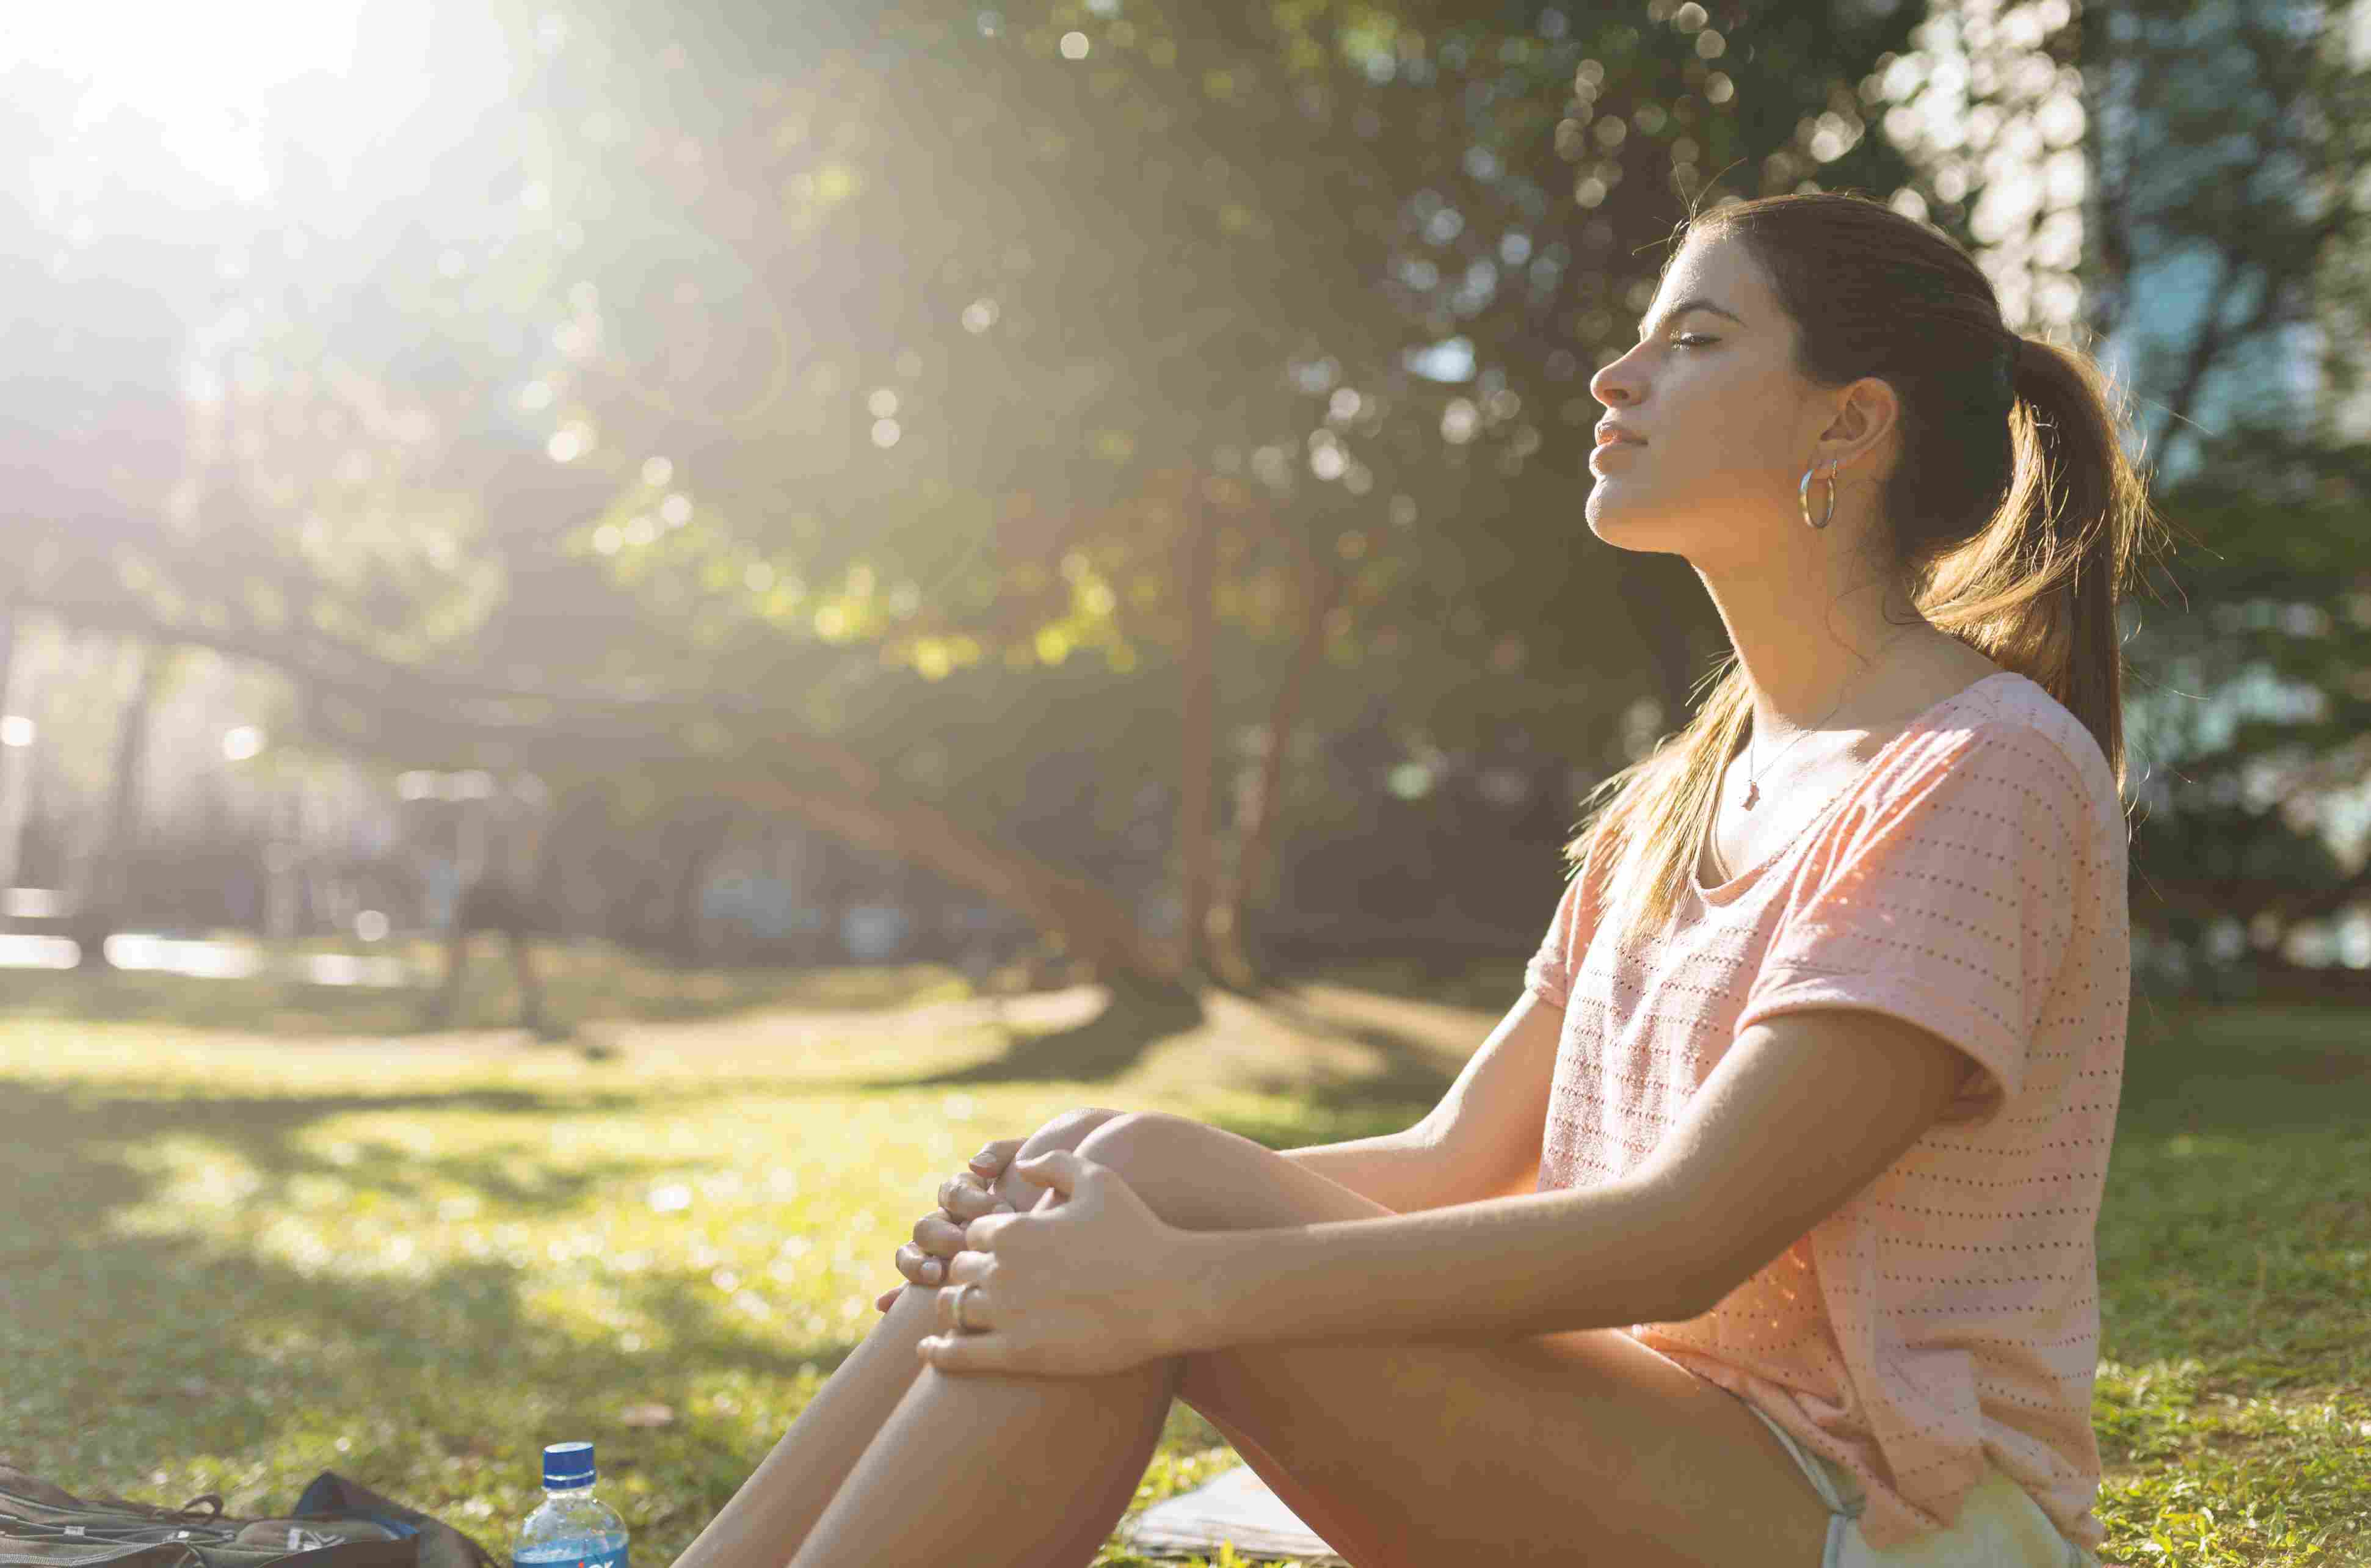 Woman relaxing in a park on a sunny day